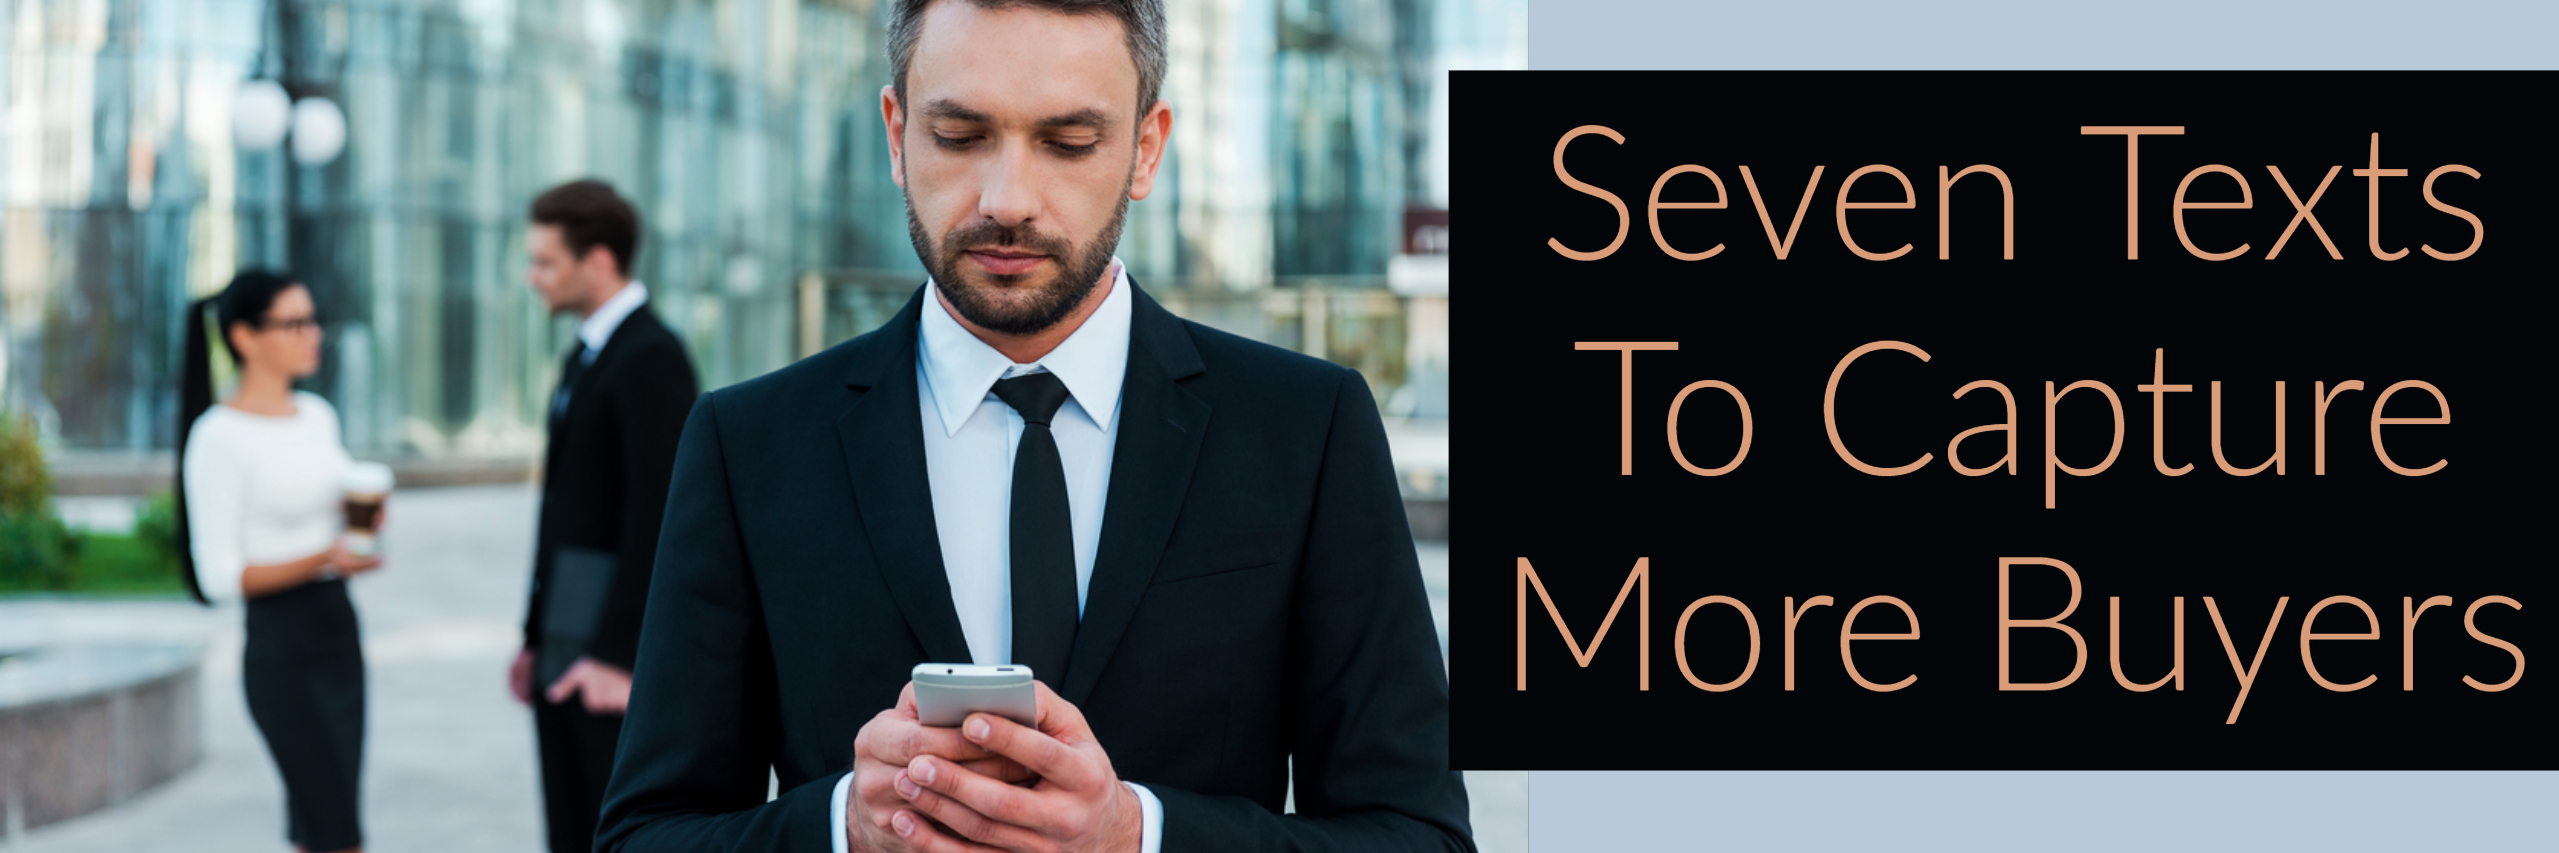 Seven Texts To Capture More Buyers best real estate agent in Los Angeles Agent Success Journal Paul Argueta